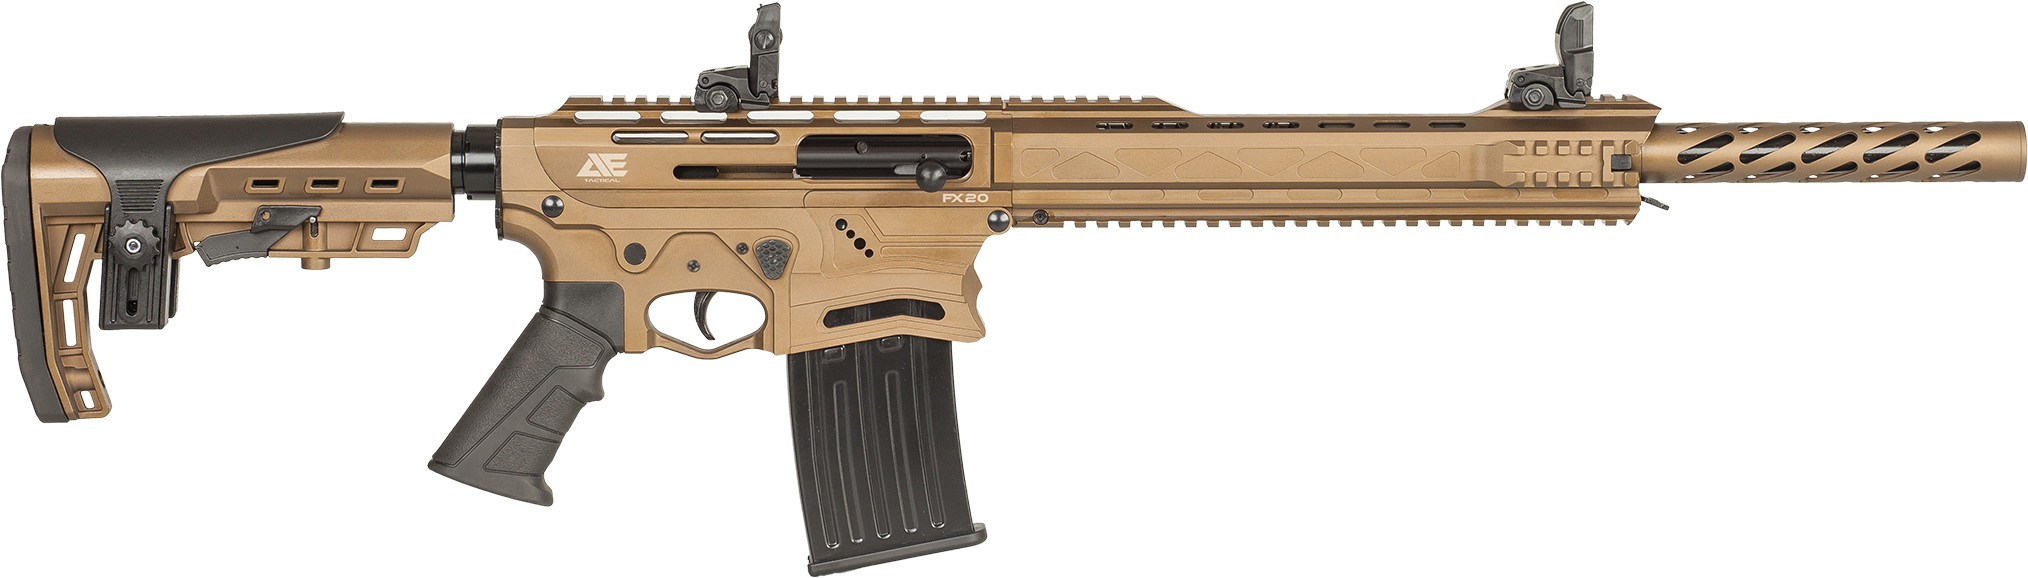 AE TACTICAL FX20-102